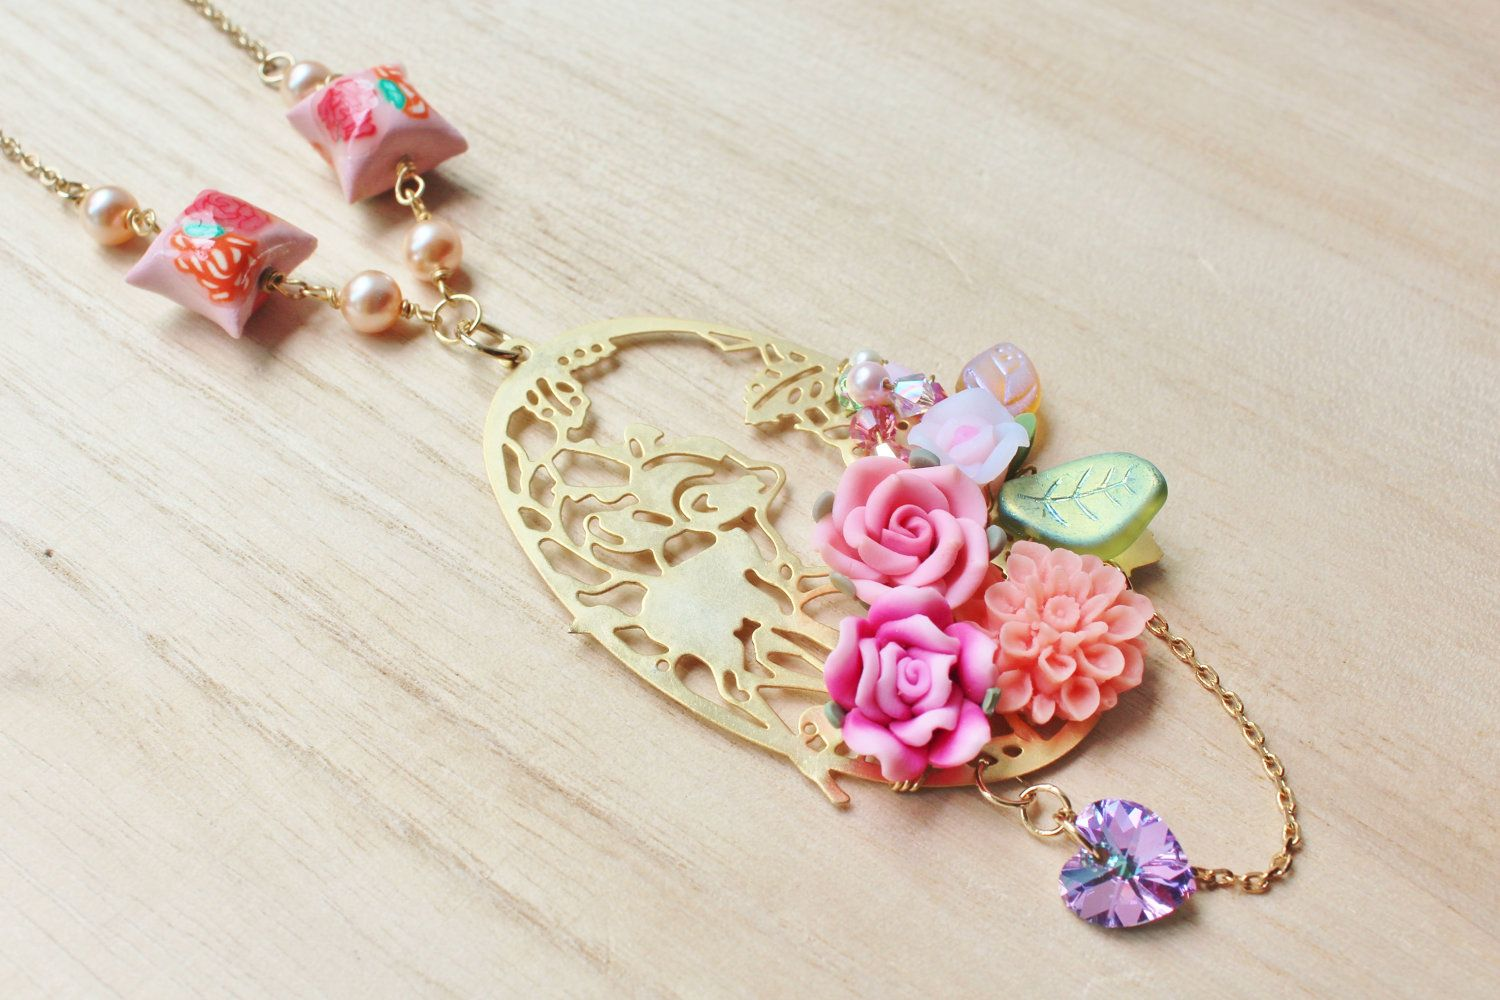 Woodland Bambi Statement Necklace - whimsical jewelry - bambi deer stamping, clay pillows, flower cabochon, clay roses & swarovski crystals. $35.00, via Etsy.